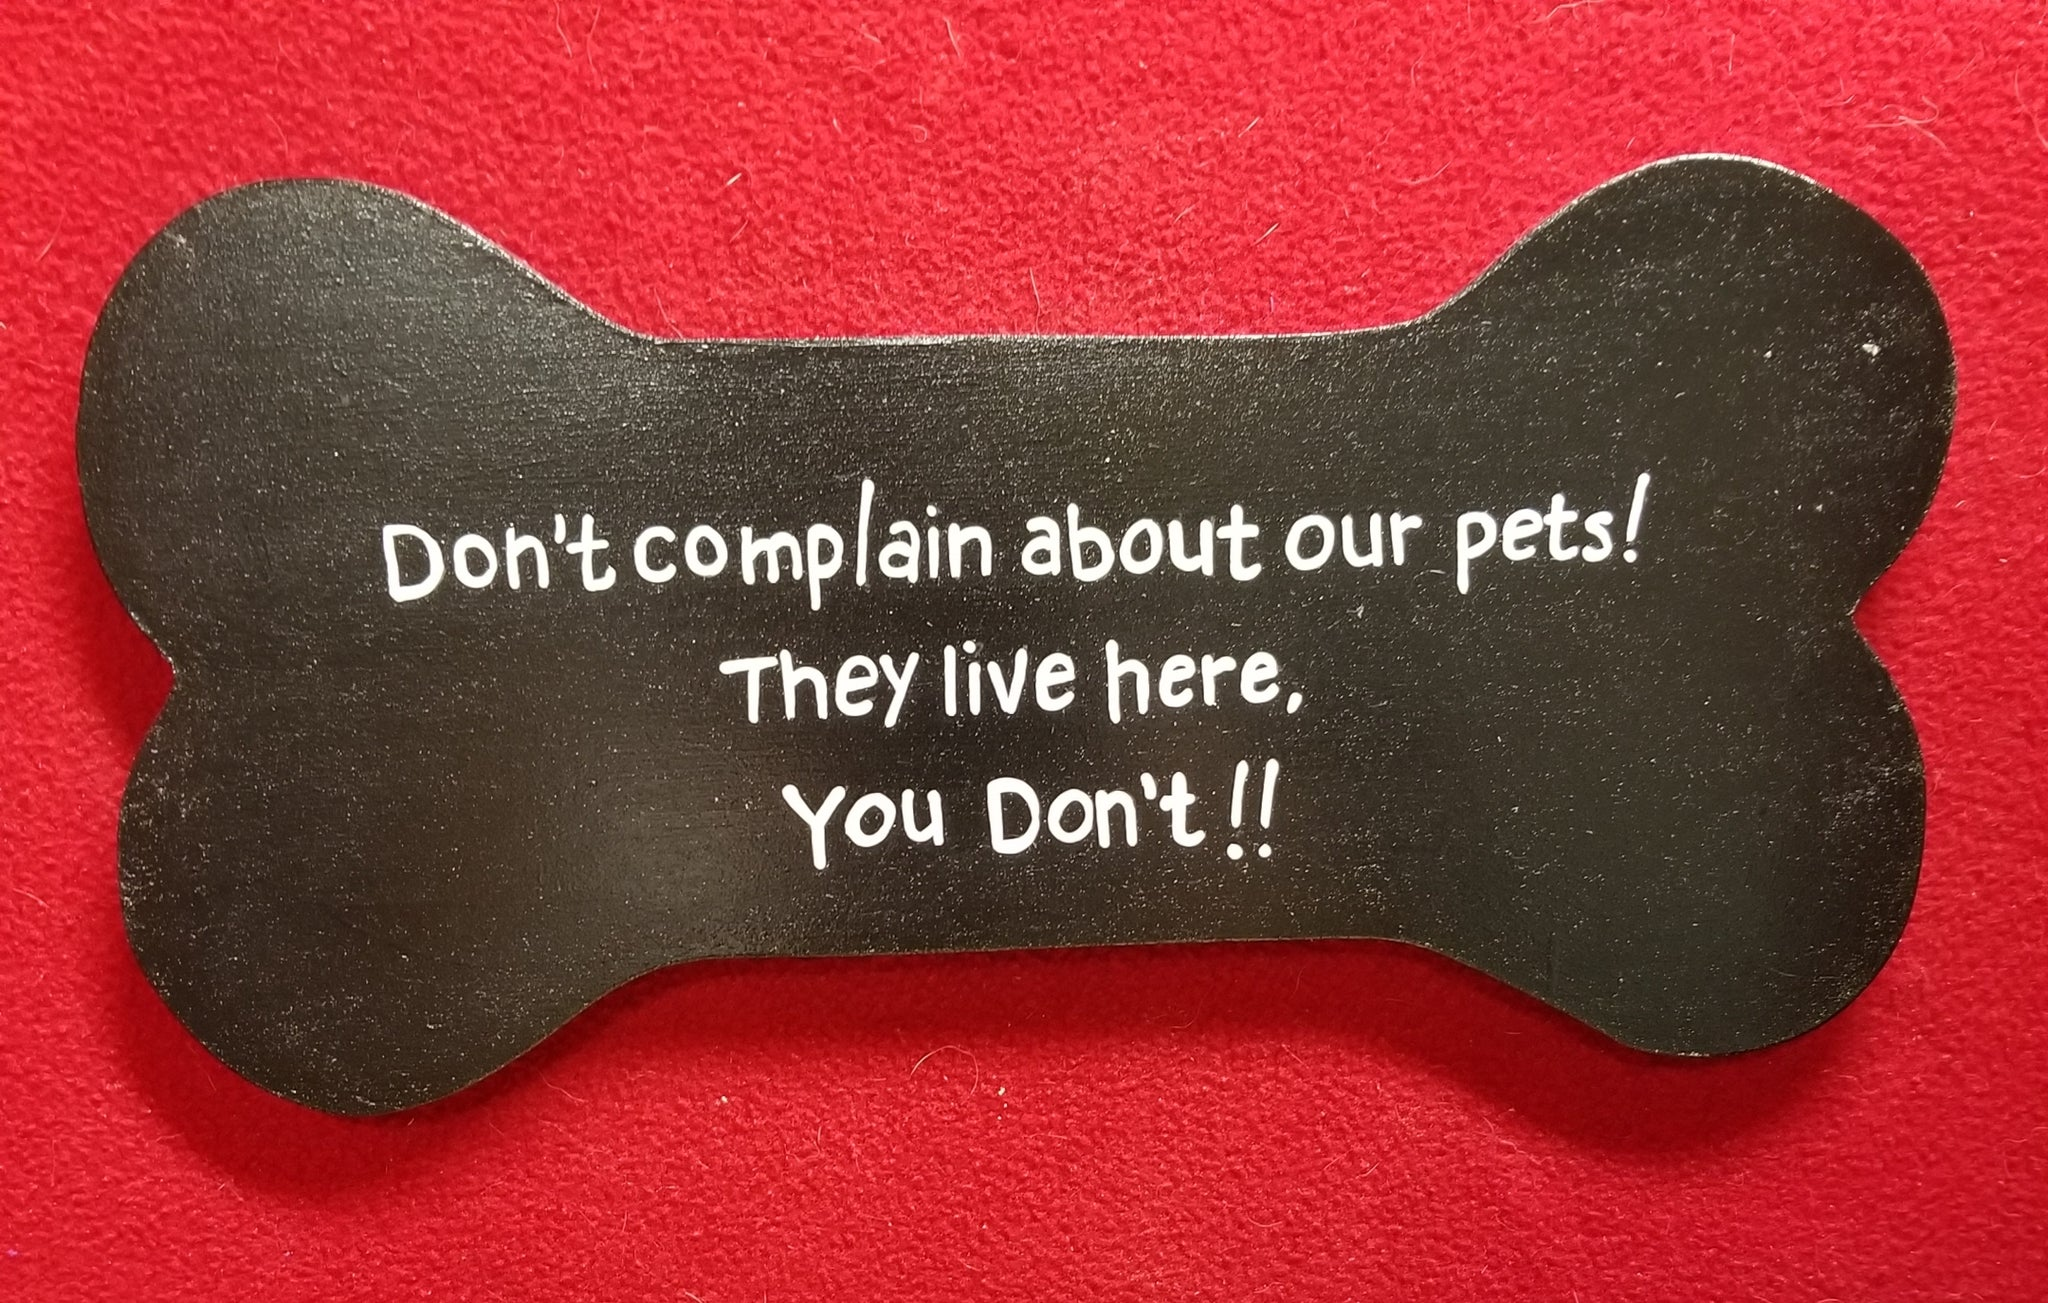 Don't complain about our pets! They live here, You don't!!